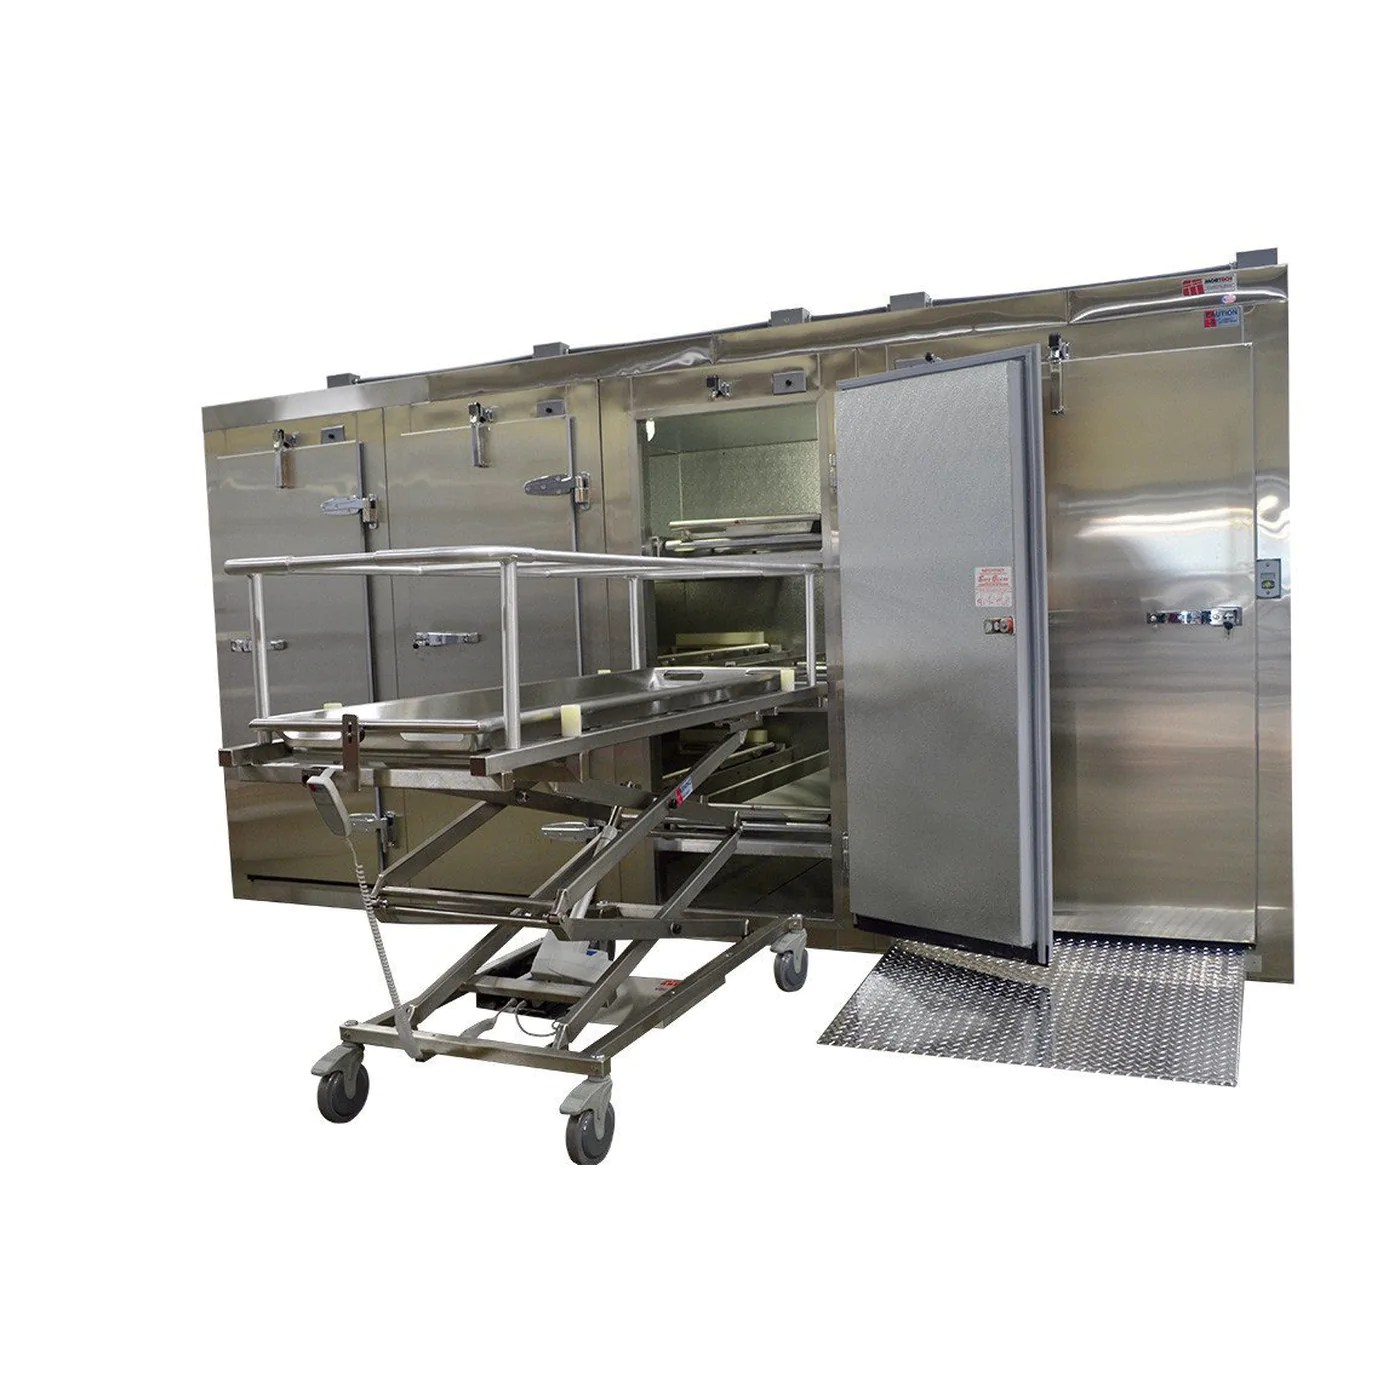 Dissecting Cart Mortech Manufacturing Company - Year of